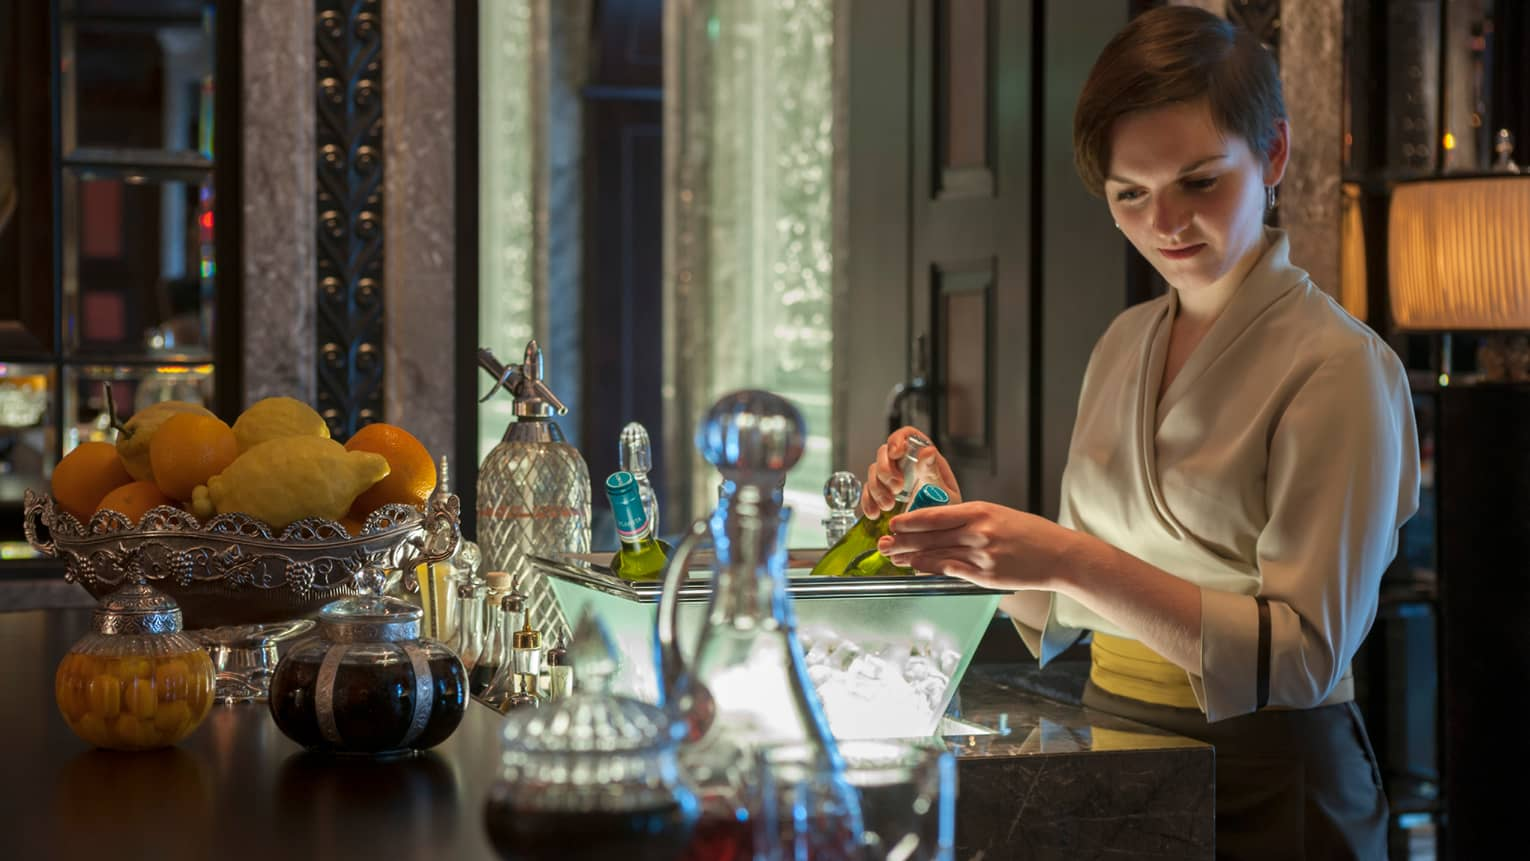 Woman in wrap dress reaches for Champagne bottle in dish on bar near bowl of fresh fruit